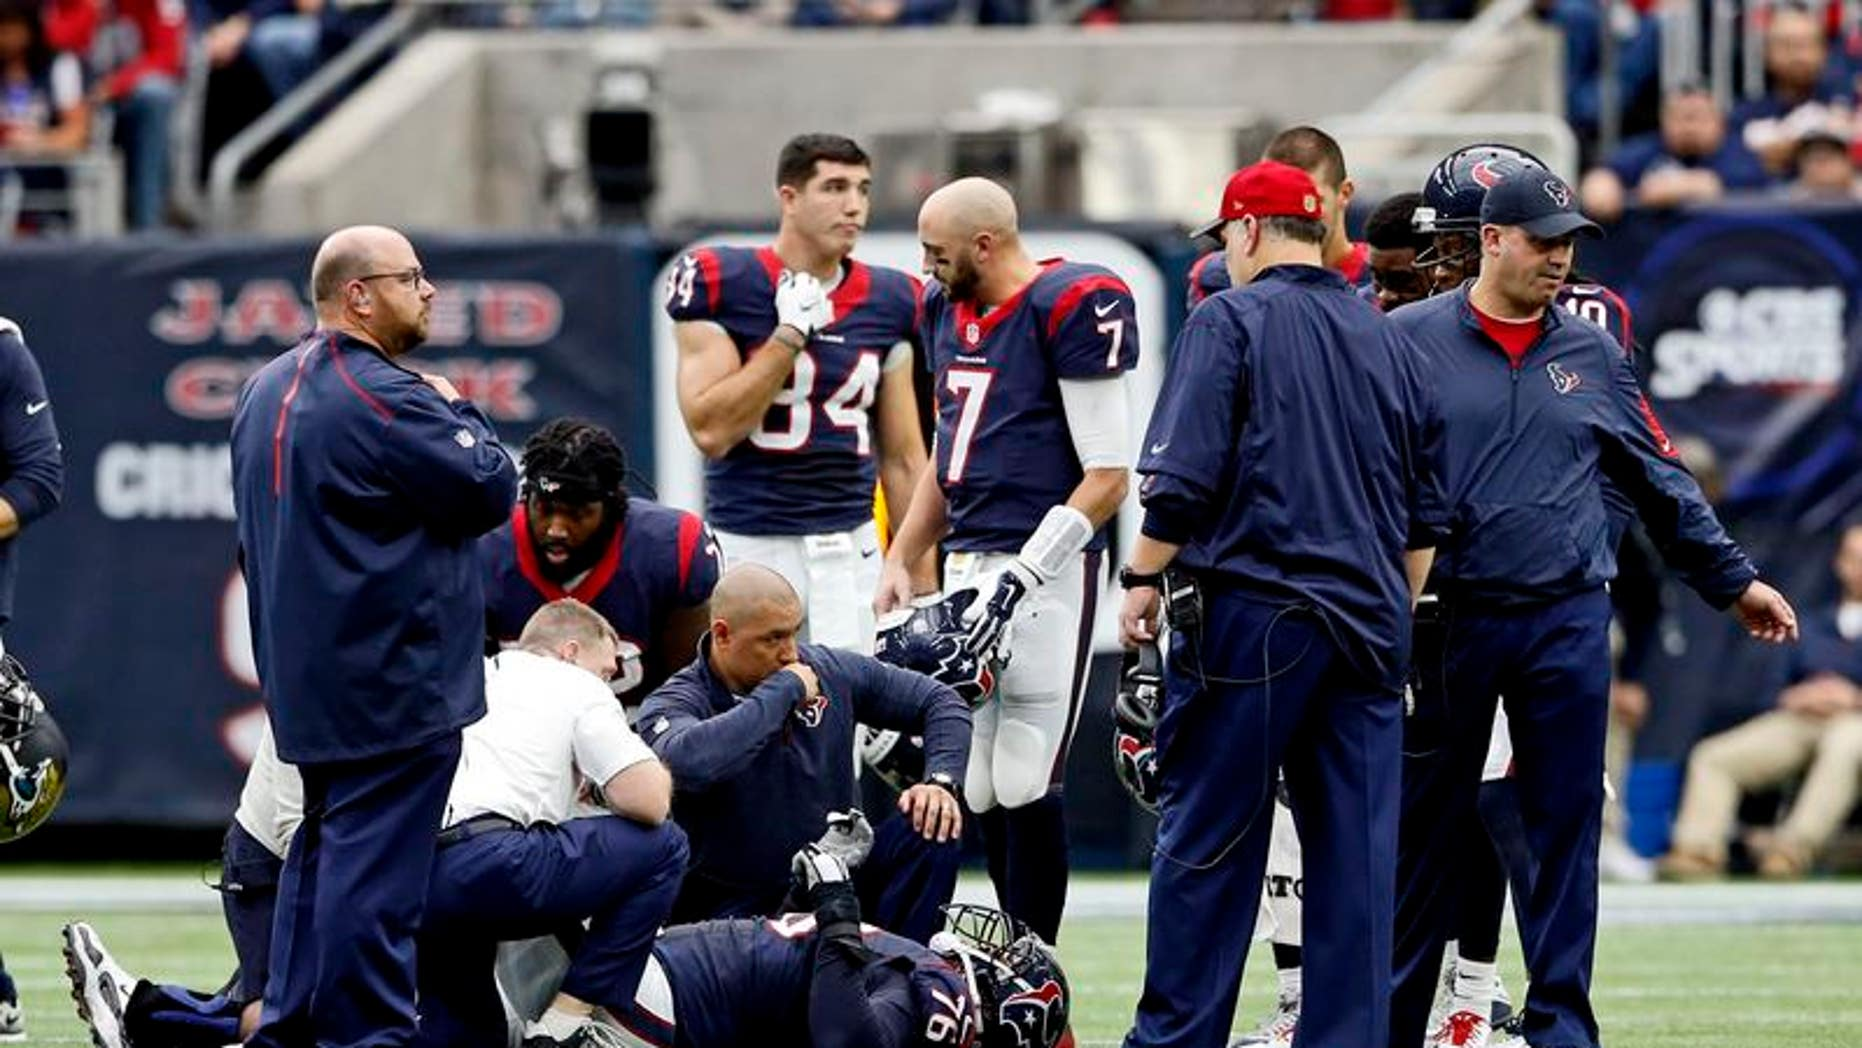 Houston Texans tackle Duane Brown is examined by team medical staff after being injured during the first half against the Jacksonville Jaguars at NRG Stadium in Houston, Texas